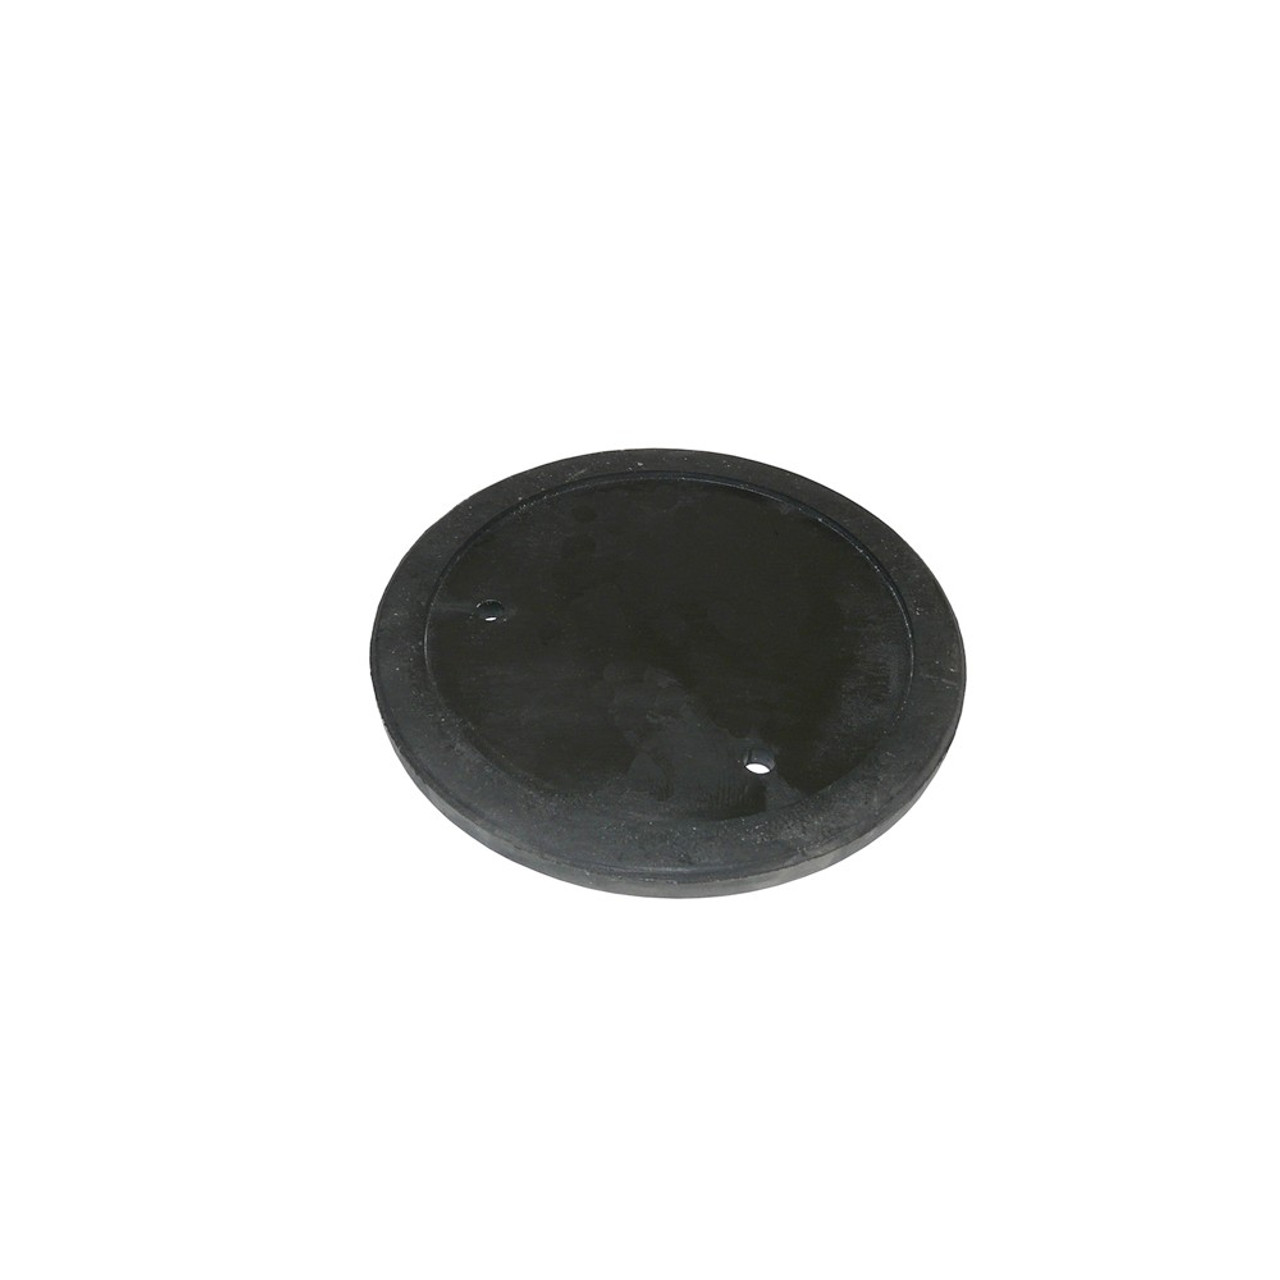 Imer Spare Part Mix 120 Outlet Rubber Gasket